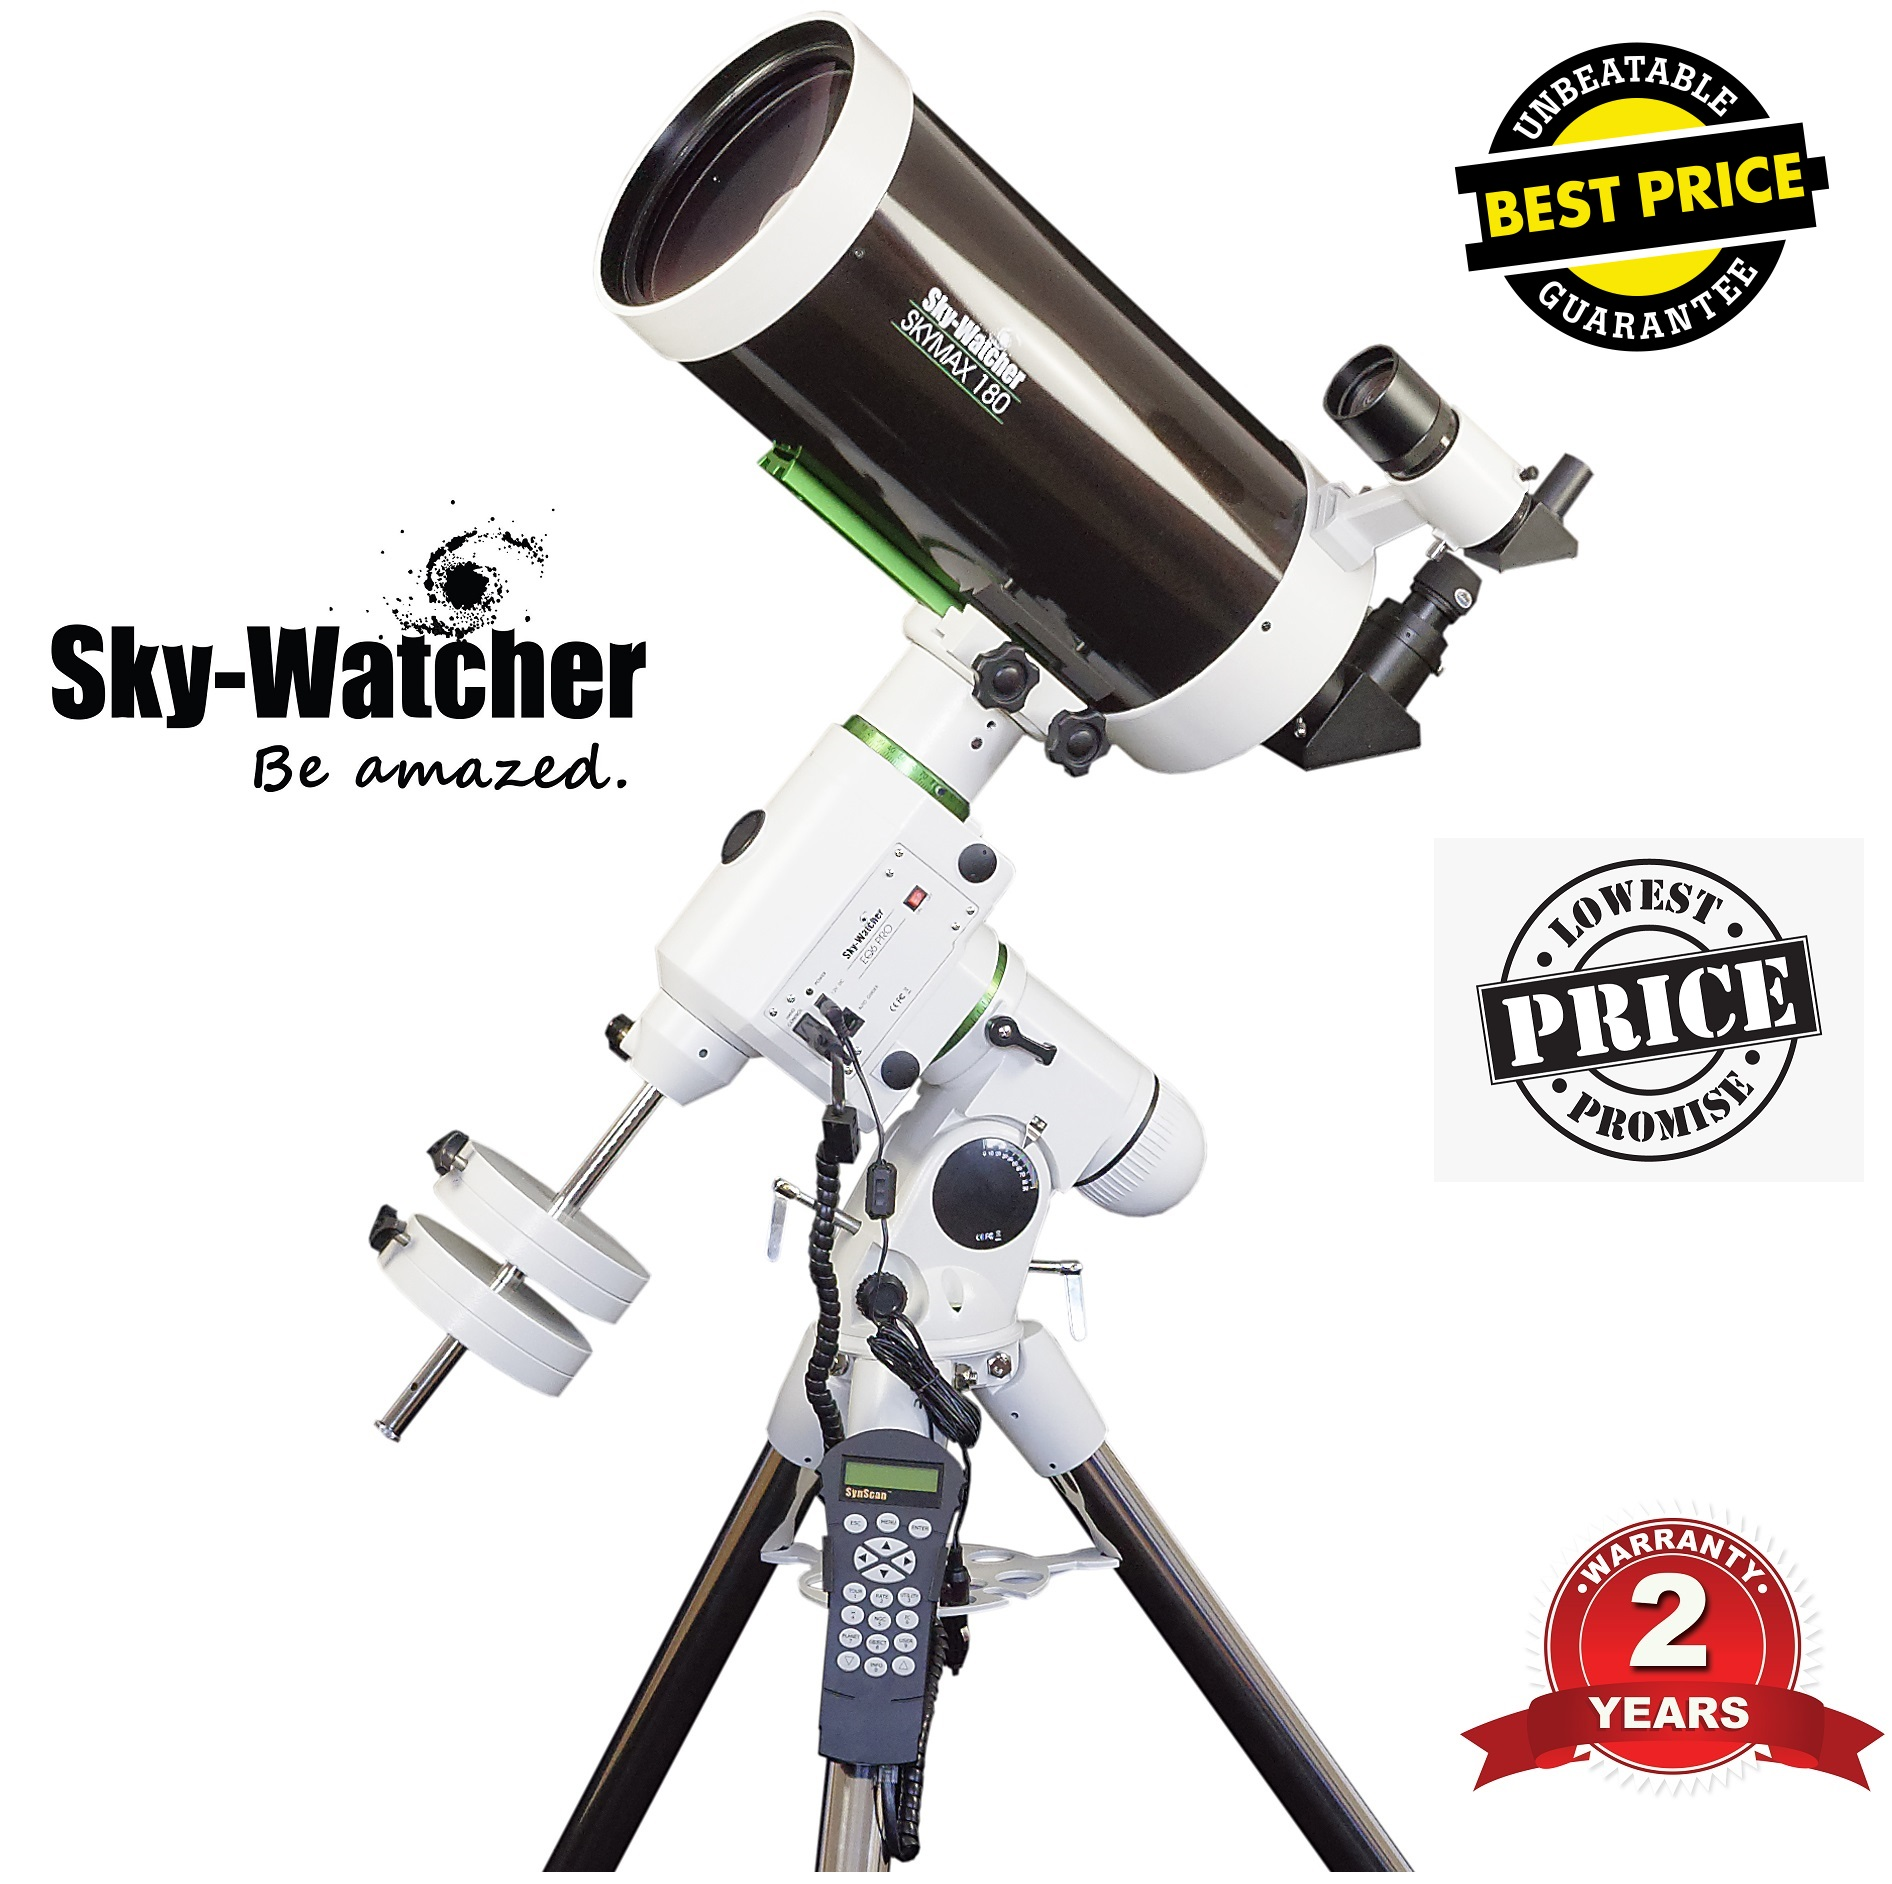 Skywatcher Skymax-180 PRO EQ6 SynScan Computerized Telescope